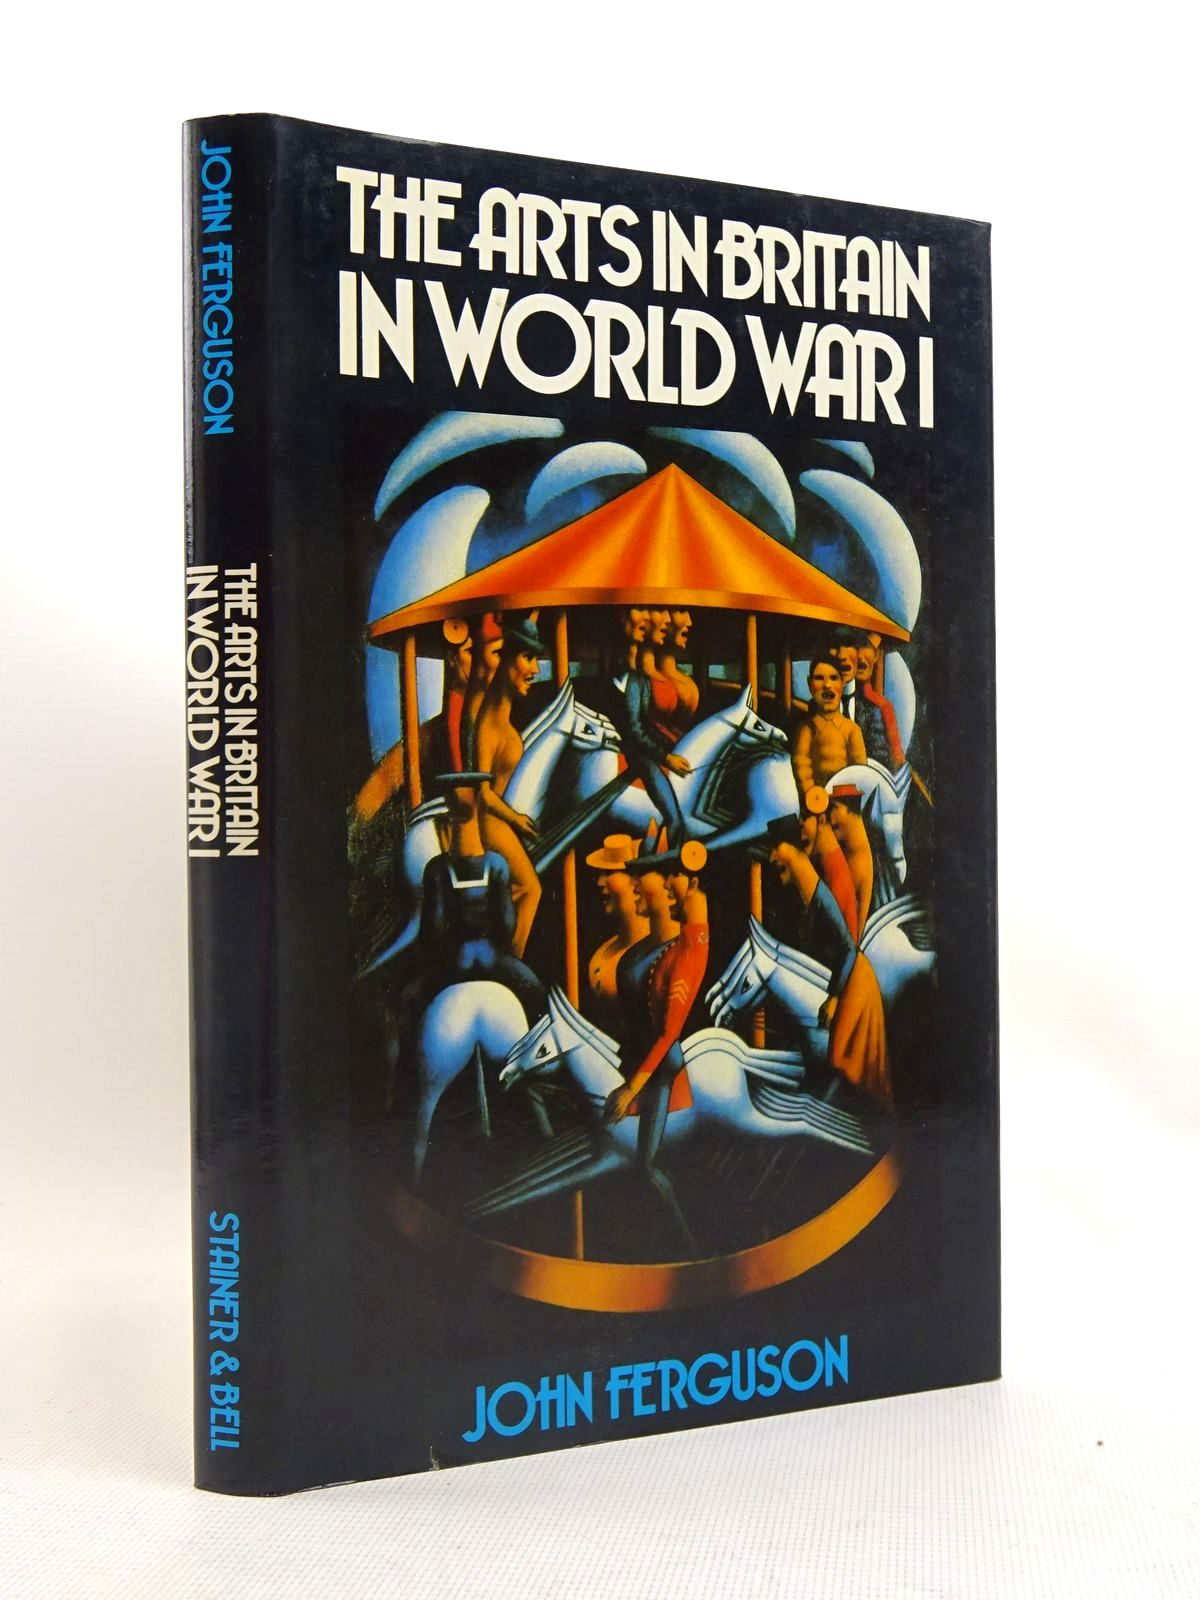 Photo of THE ARTS IN BRITAIN IN WORLD WAR I written by Ferguson, John published by Stainer & Bell Ltd. (STOCK CODE: 1317547)  for sale by Stella & Rose's Books